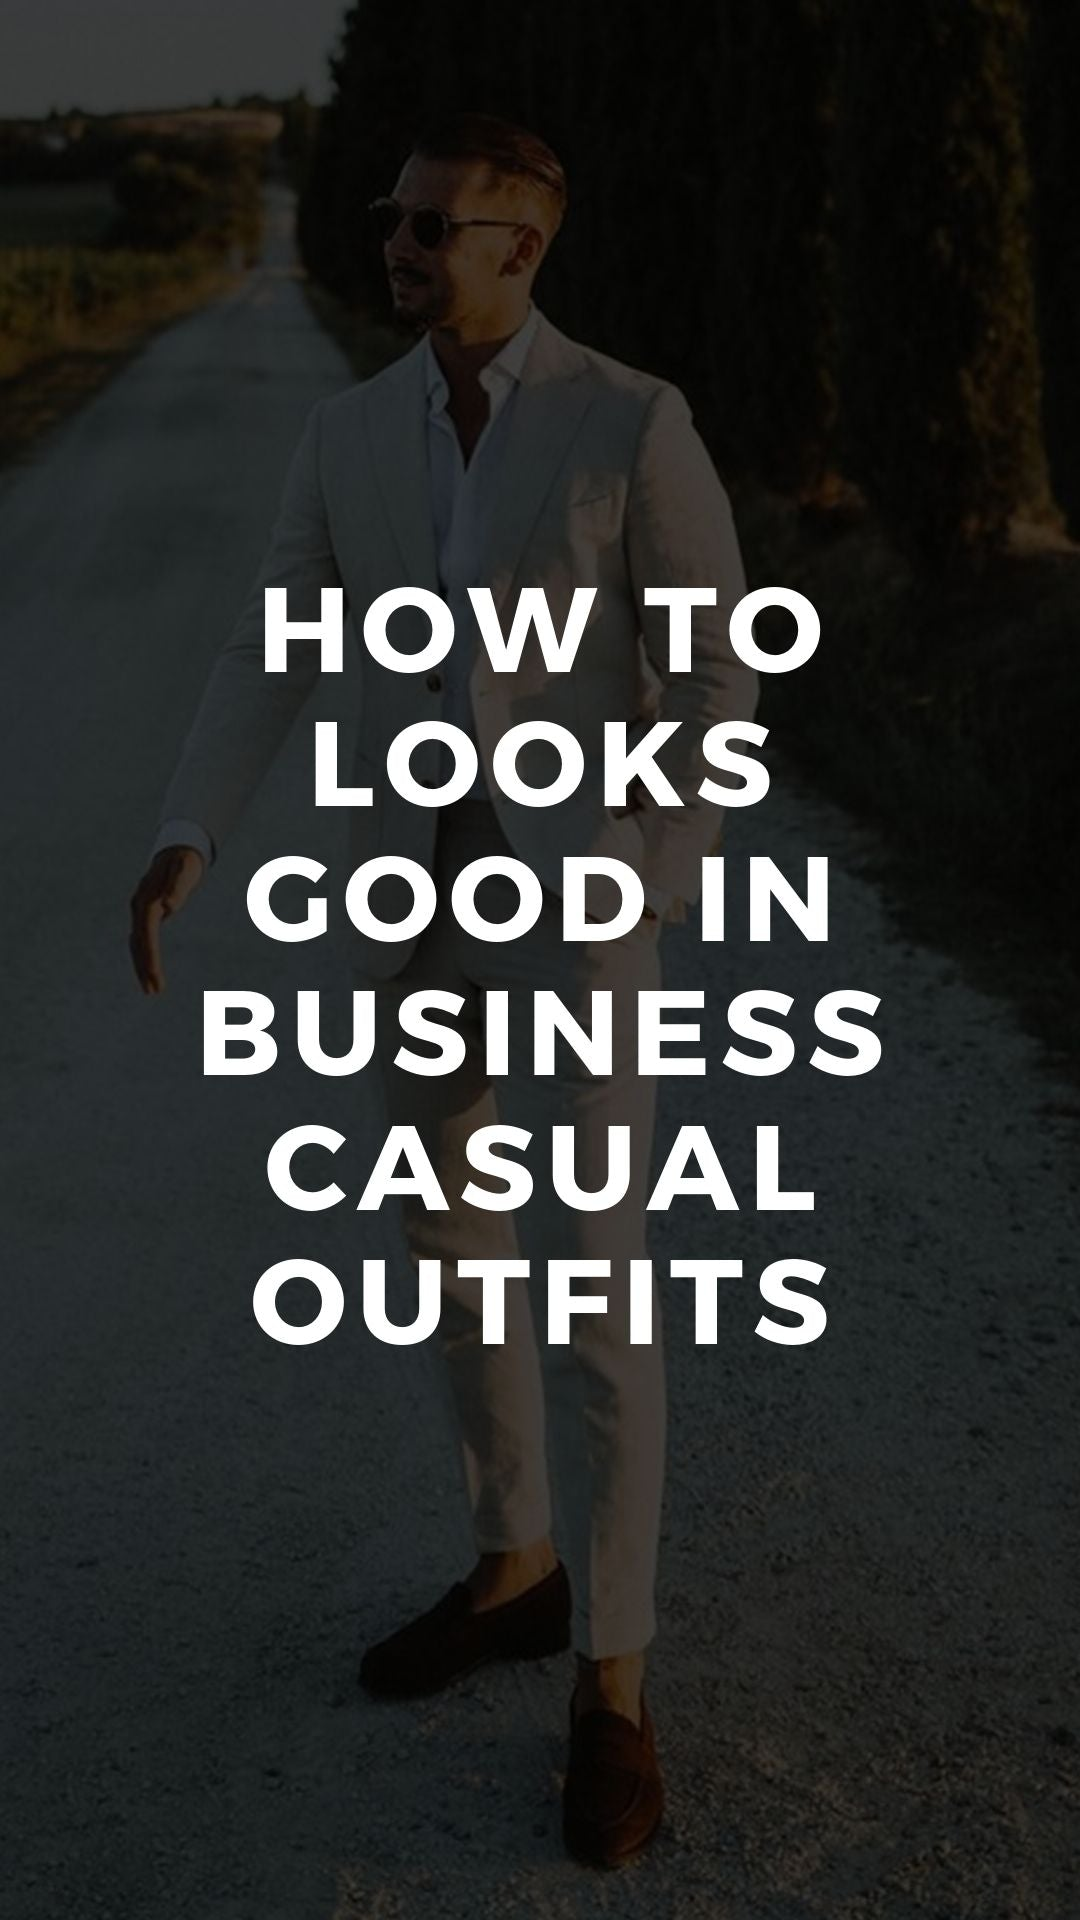 Business causal outfits for men #business #casual #outfits